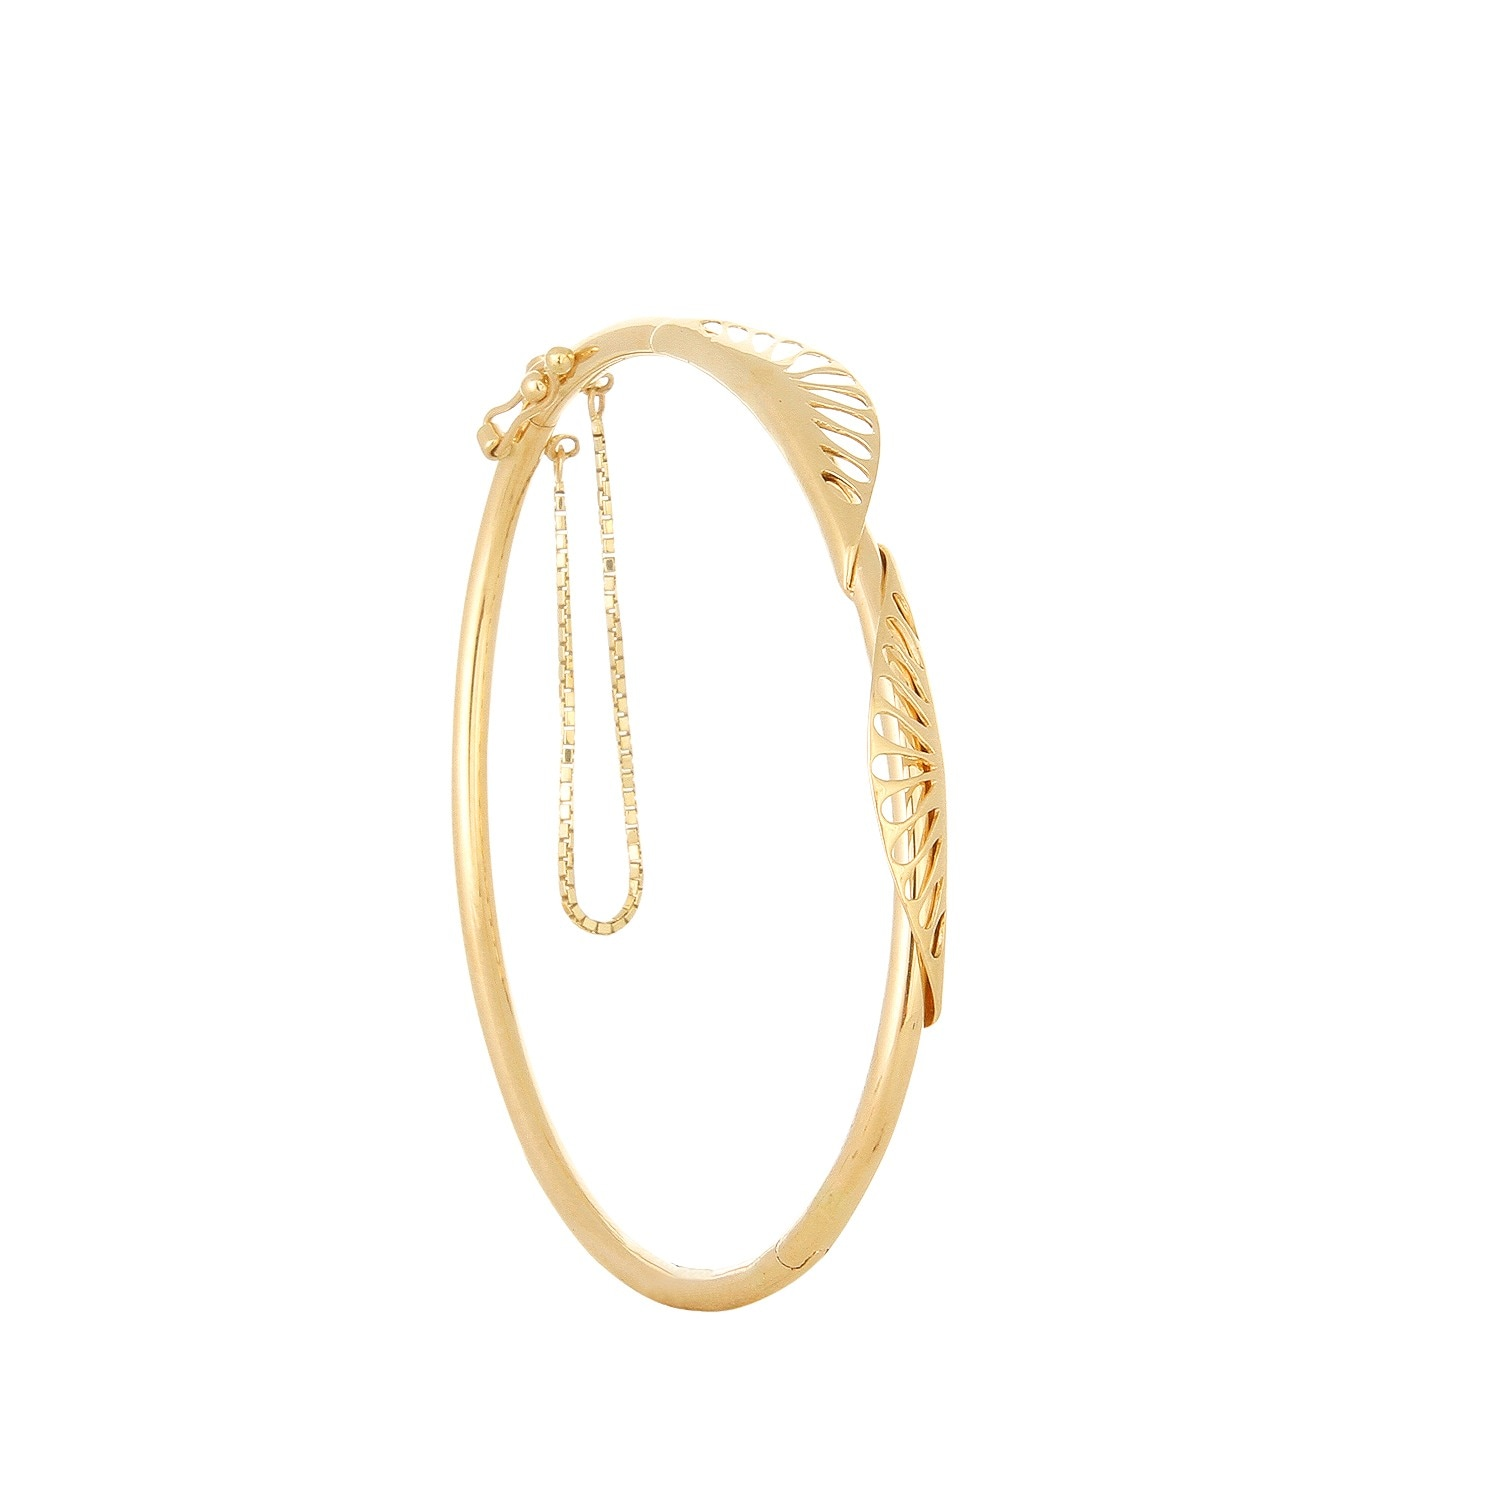 d3aa0257b1e64 Mia by Tanishq 14KT Yellow Gold Rolo Chain | Tanishq